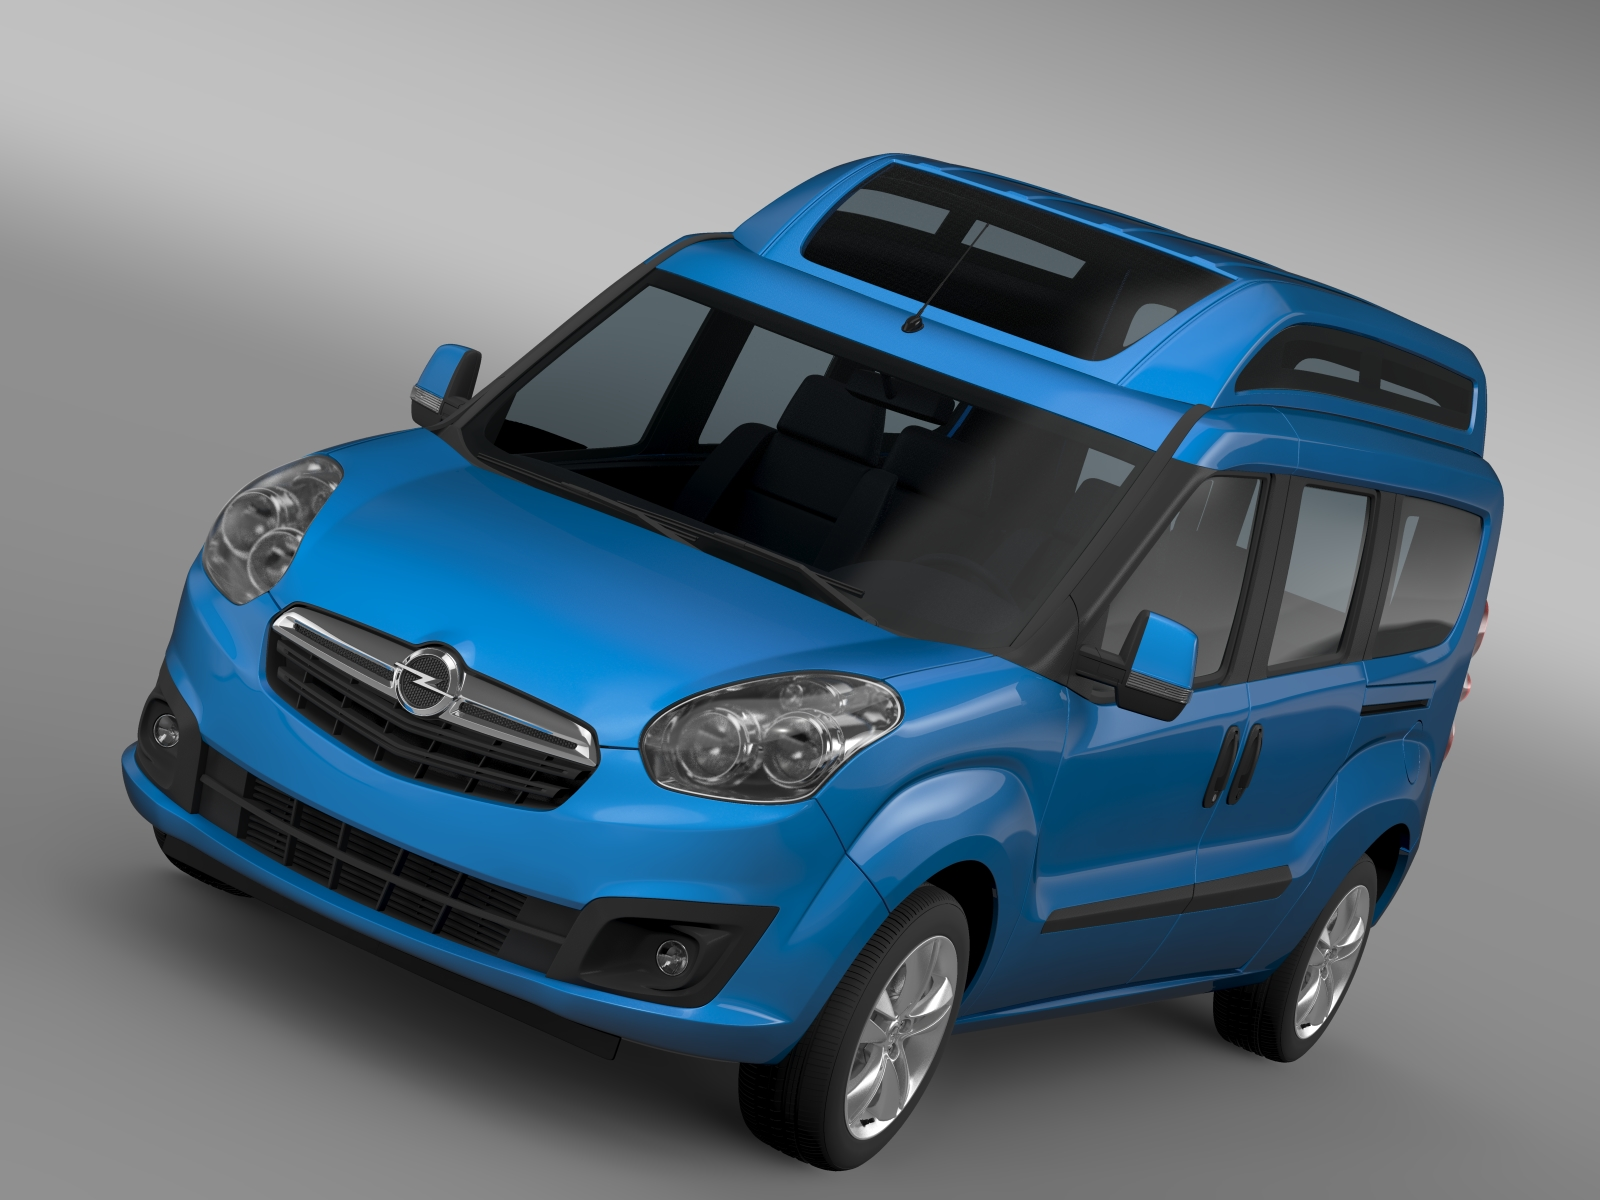 opel combo tour high roof lwb (d) 2015 3d model 3ds max fbx c4d lwo ma mb hrc xsi obj 214433